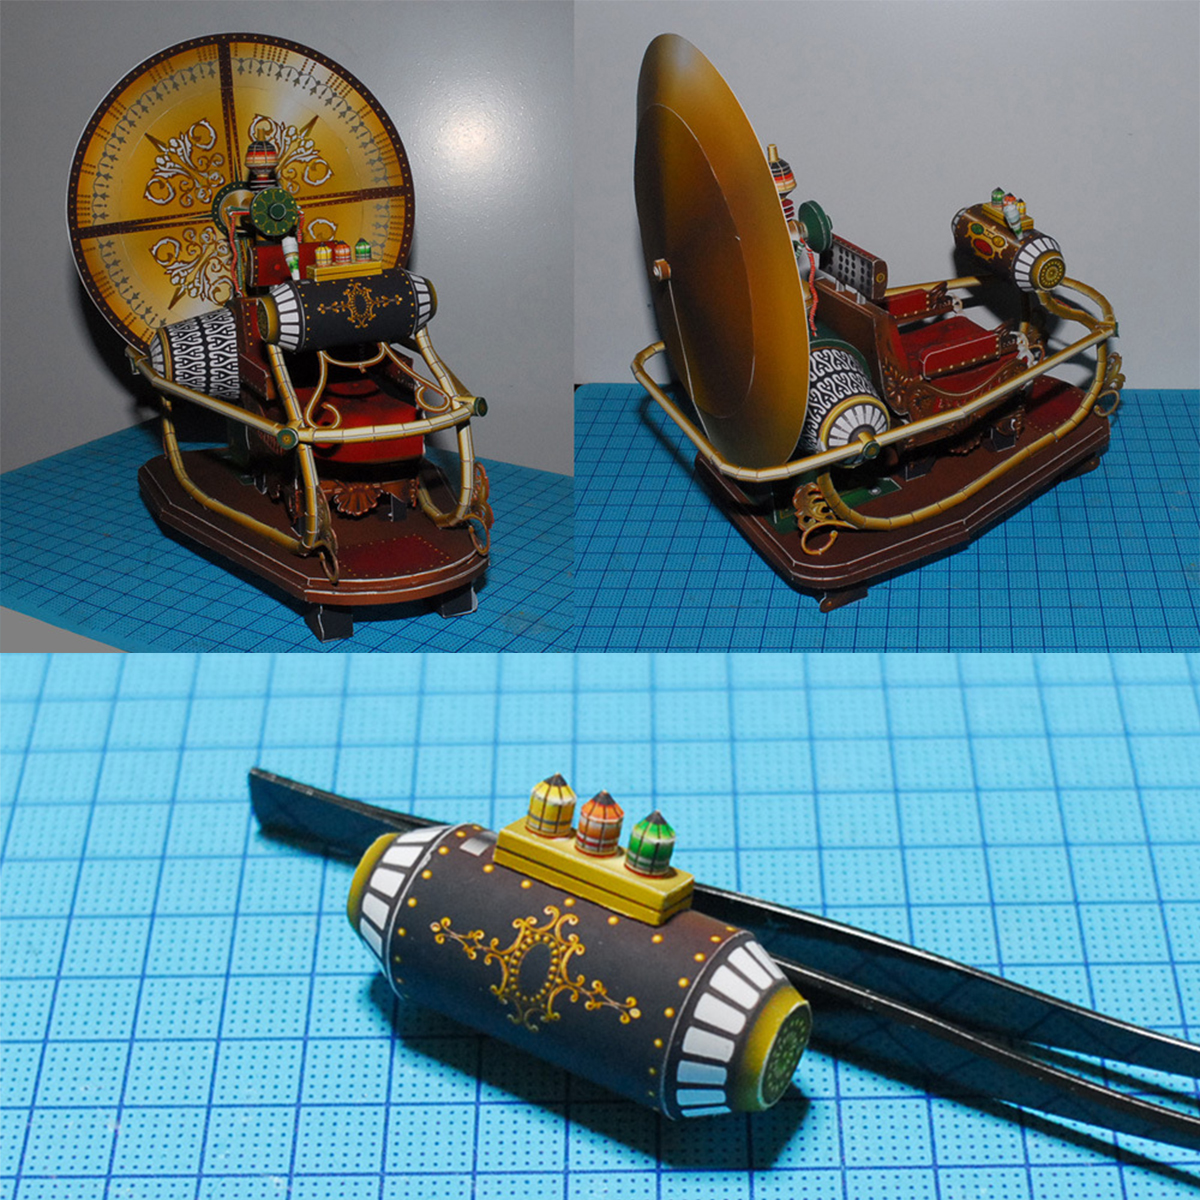 Model Kit long 25 cm 10 inches H G Wells Time Machine